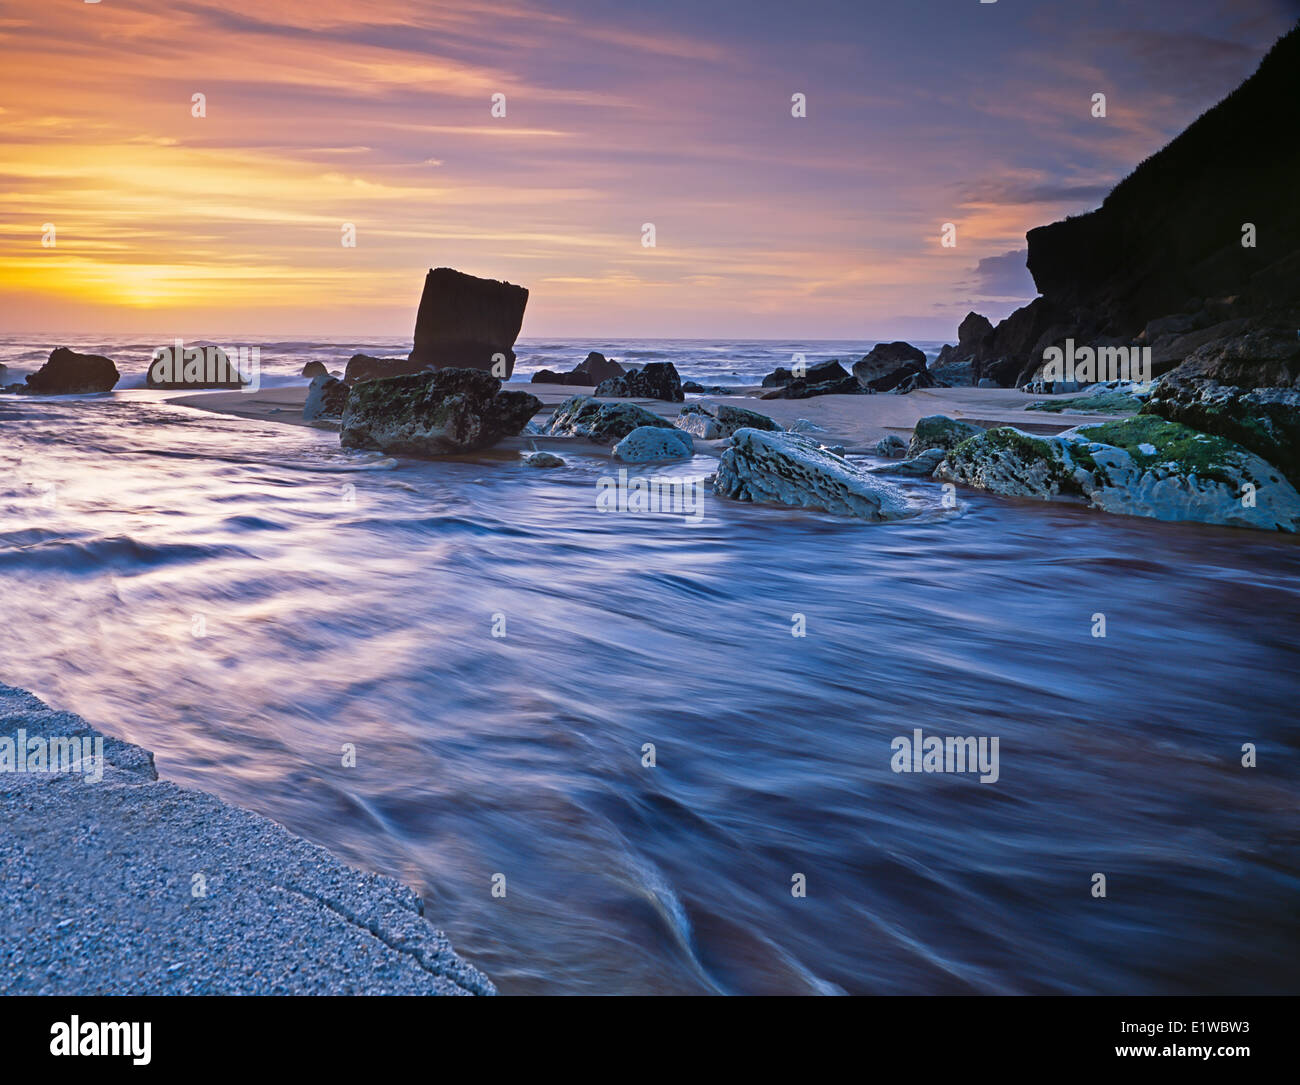 Scotts Beach, Kohaihai River, New Zealand Photo Stock